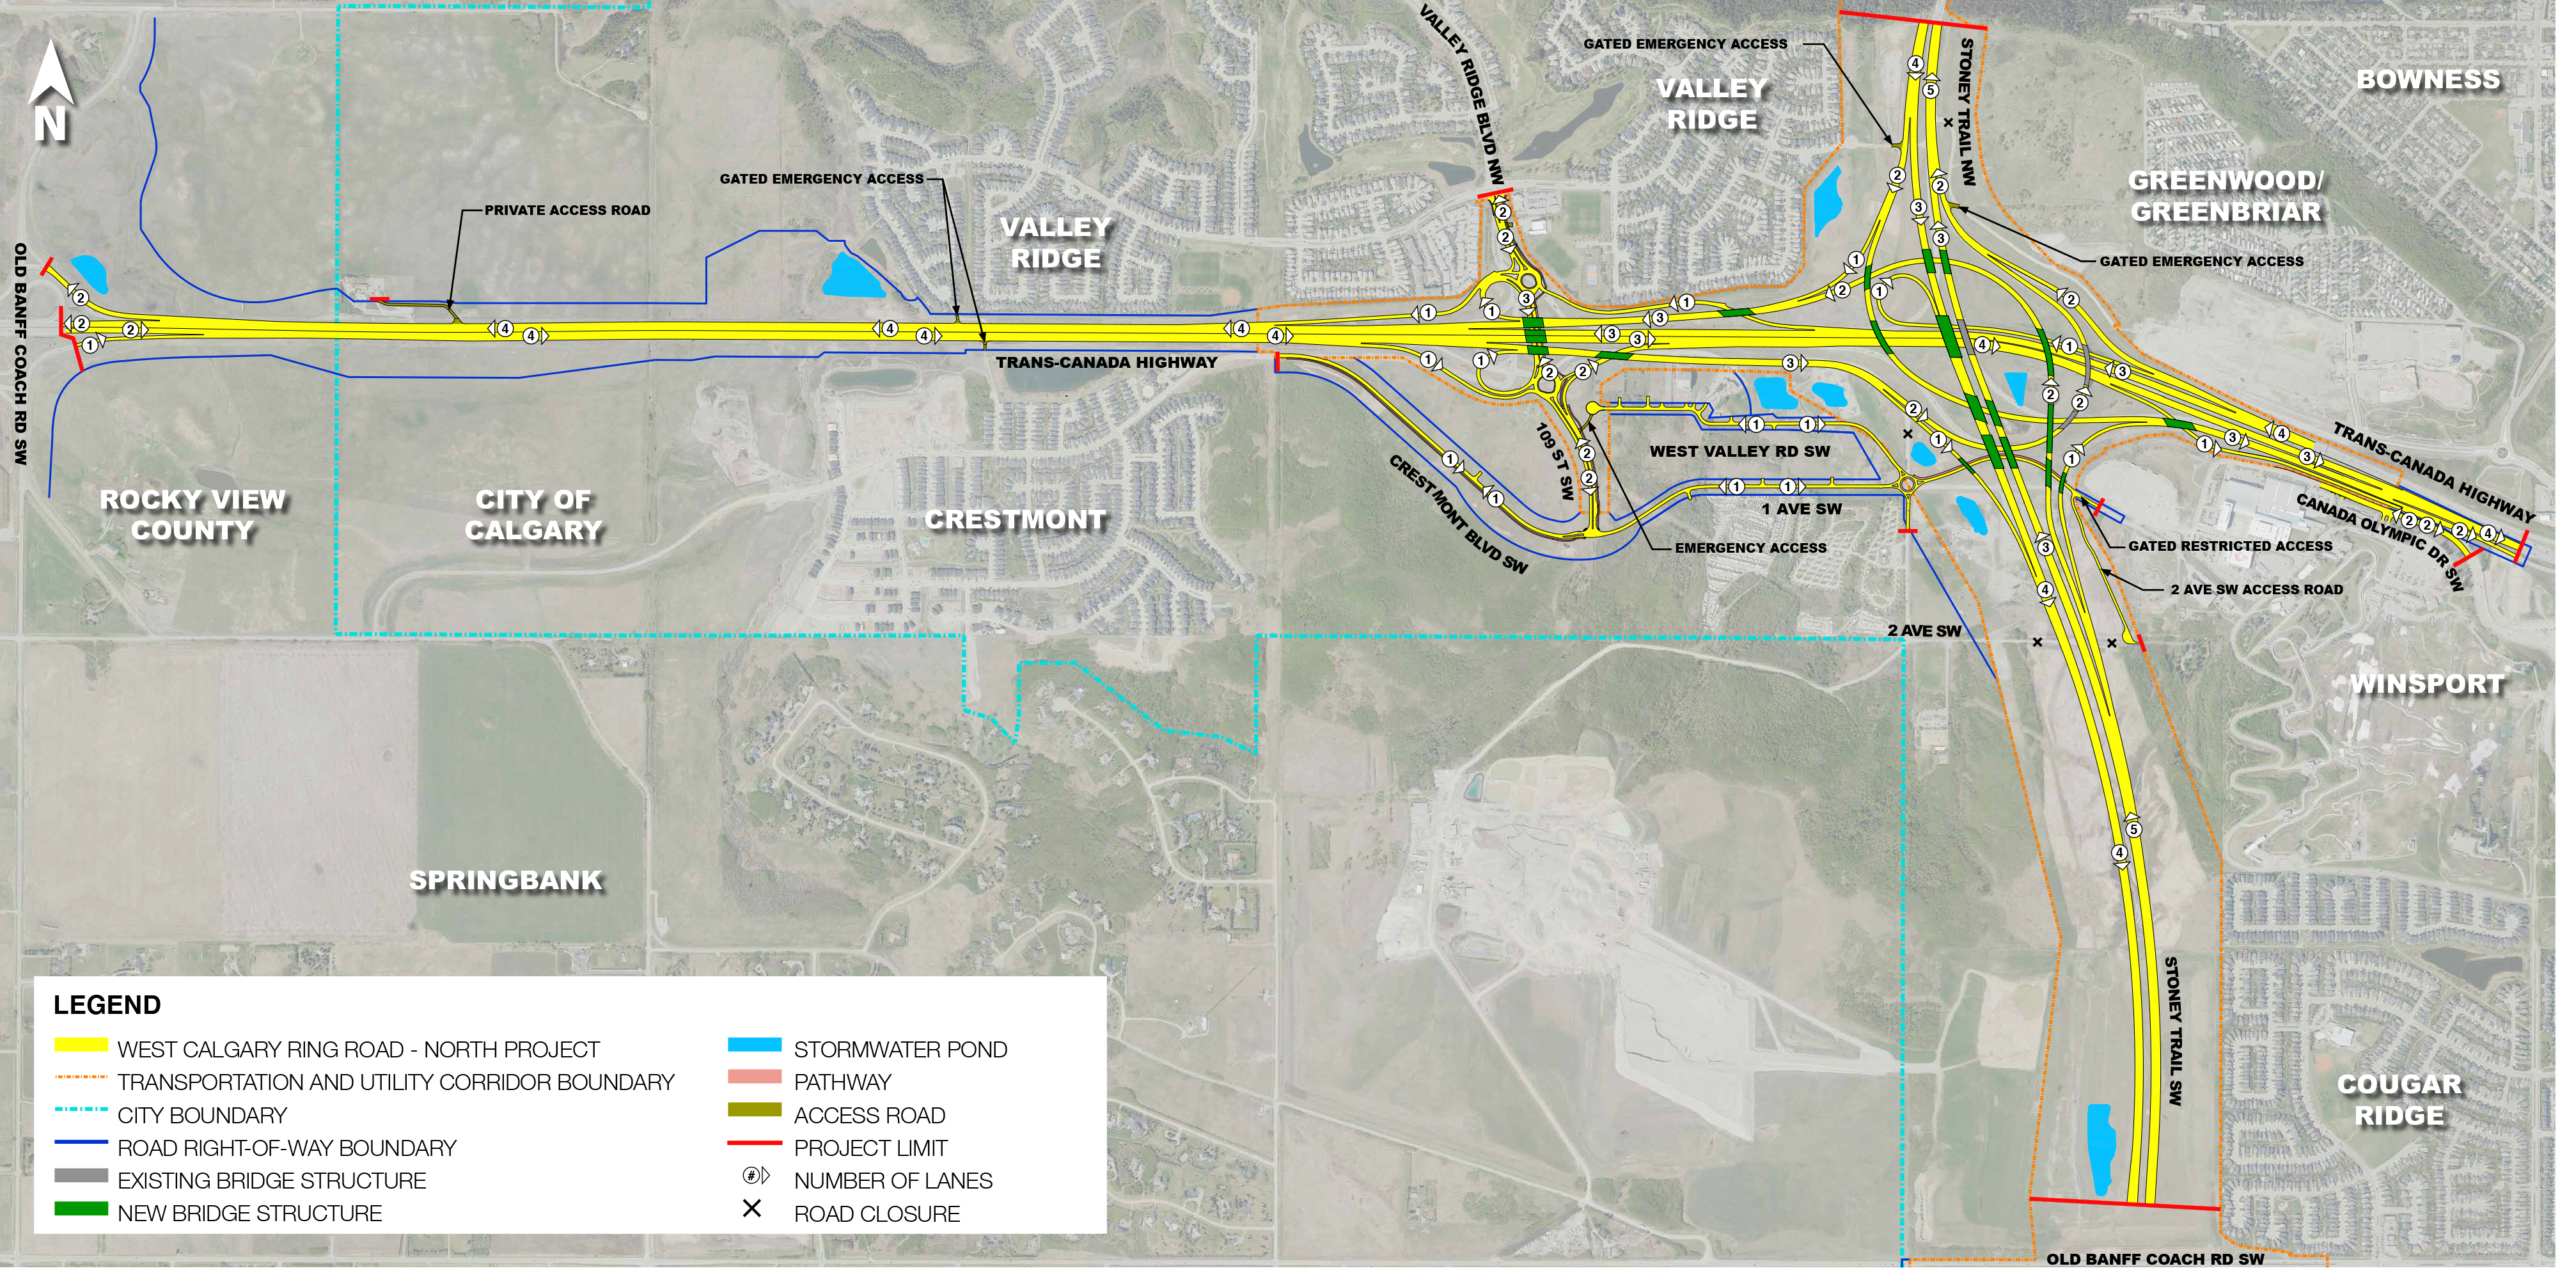 WCRR North Project Overall Plan